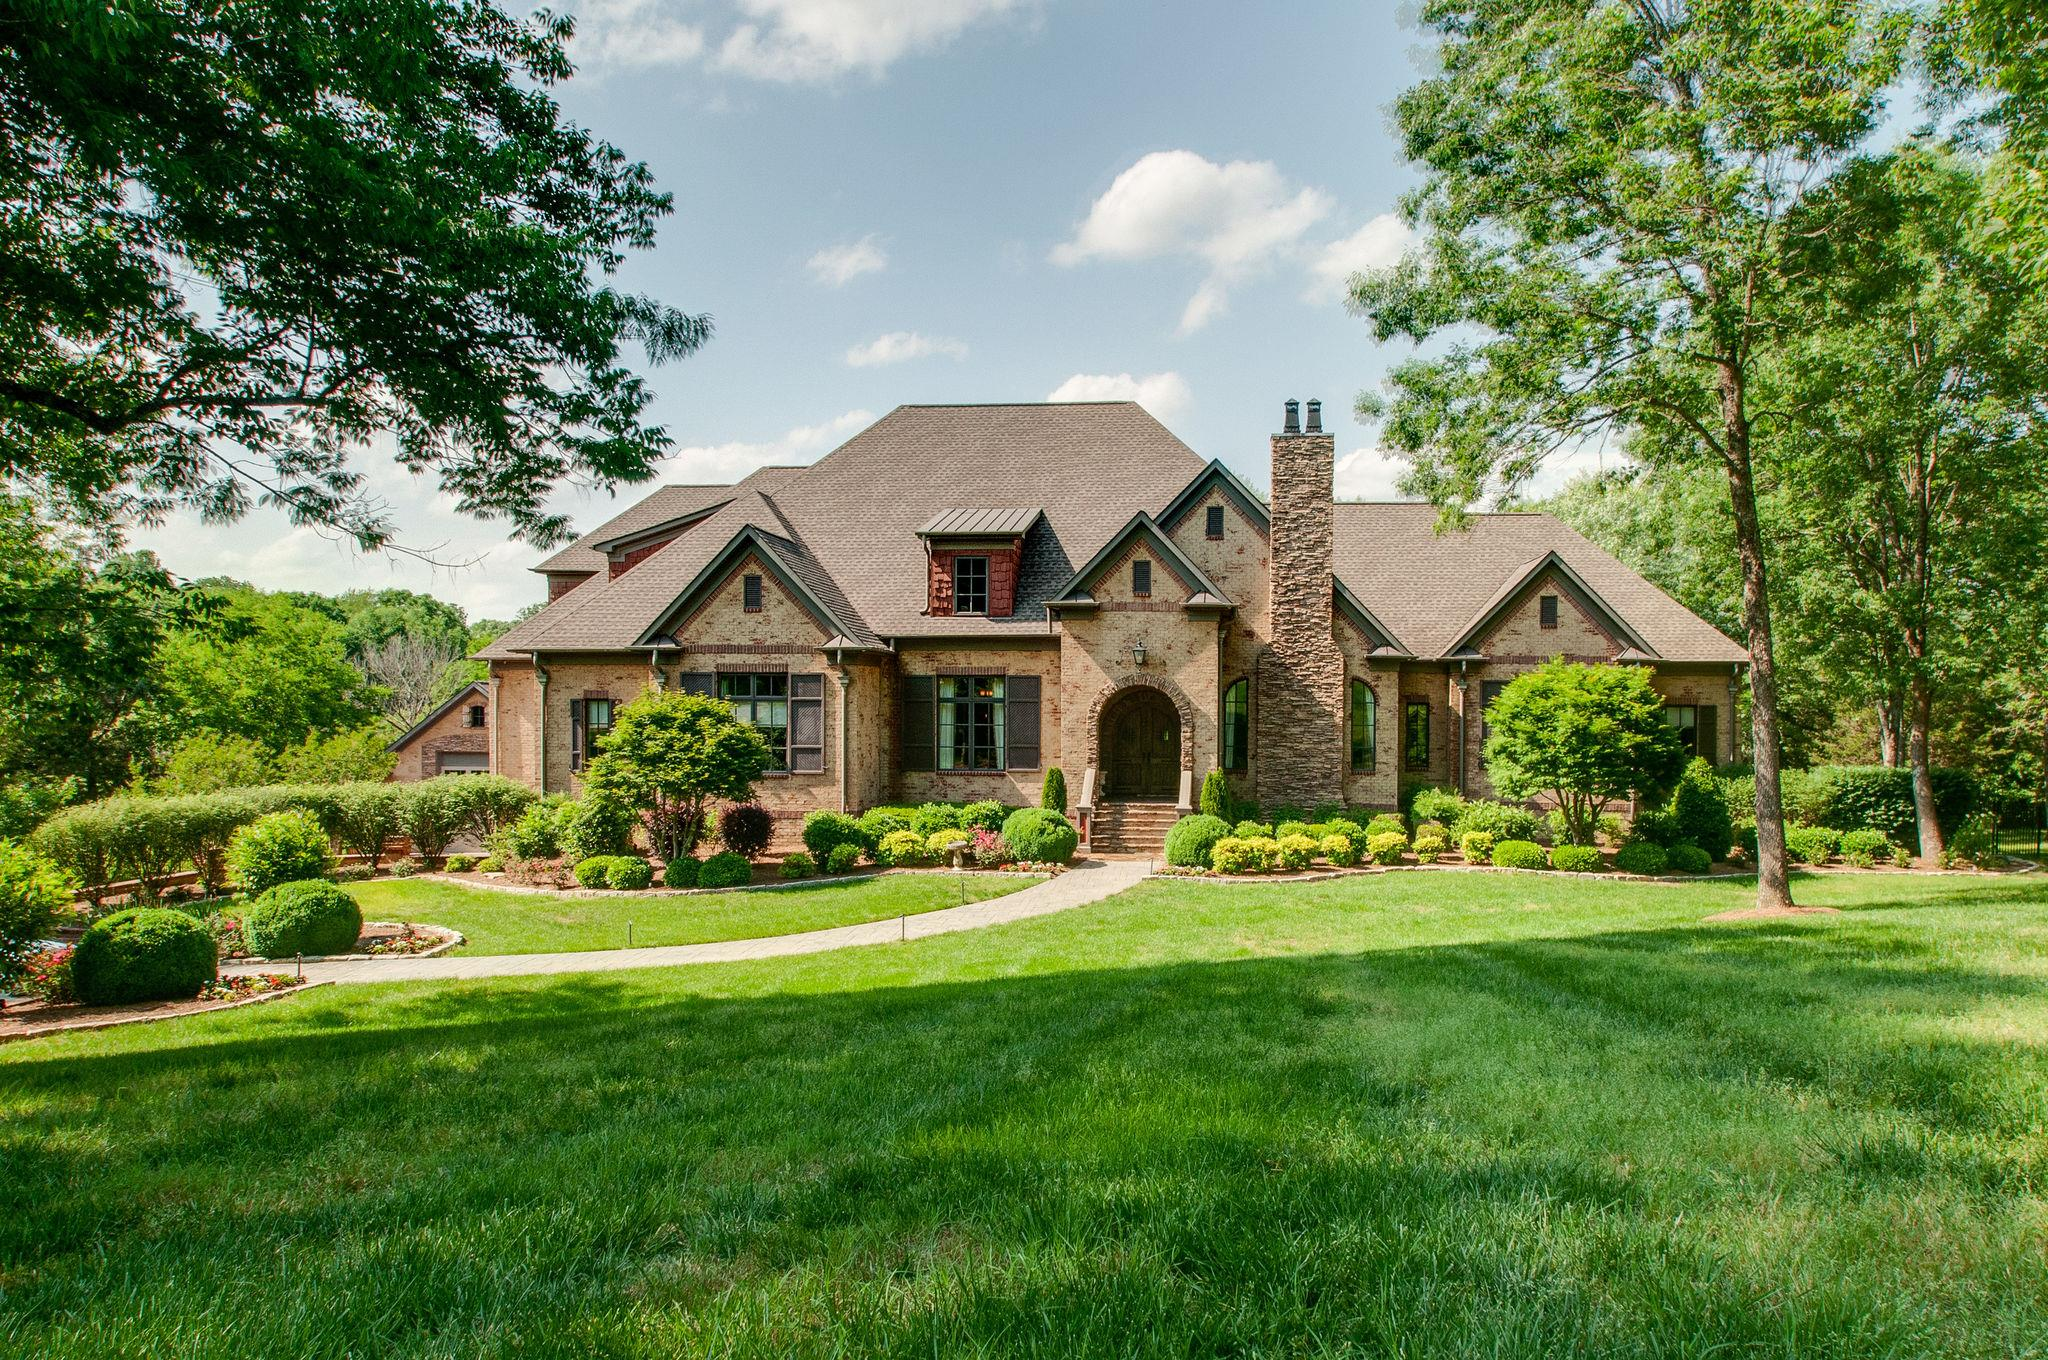 Unique and Rare Opportunity to own this French Country Inspired Estate.  Private setting near Warner Parks/ Ensworth. Williamson County Taxes.  RV garage (29X49) + 5 car garage.  4 bedrooms on the main level, in-law suite on lower level with 2nd kitchen.  Endless possibilities.  NO HOA.  OVER 100 Photos to View.